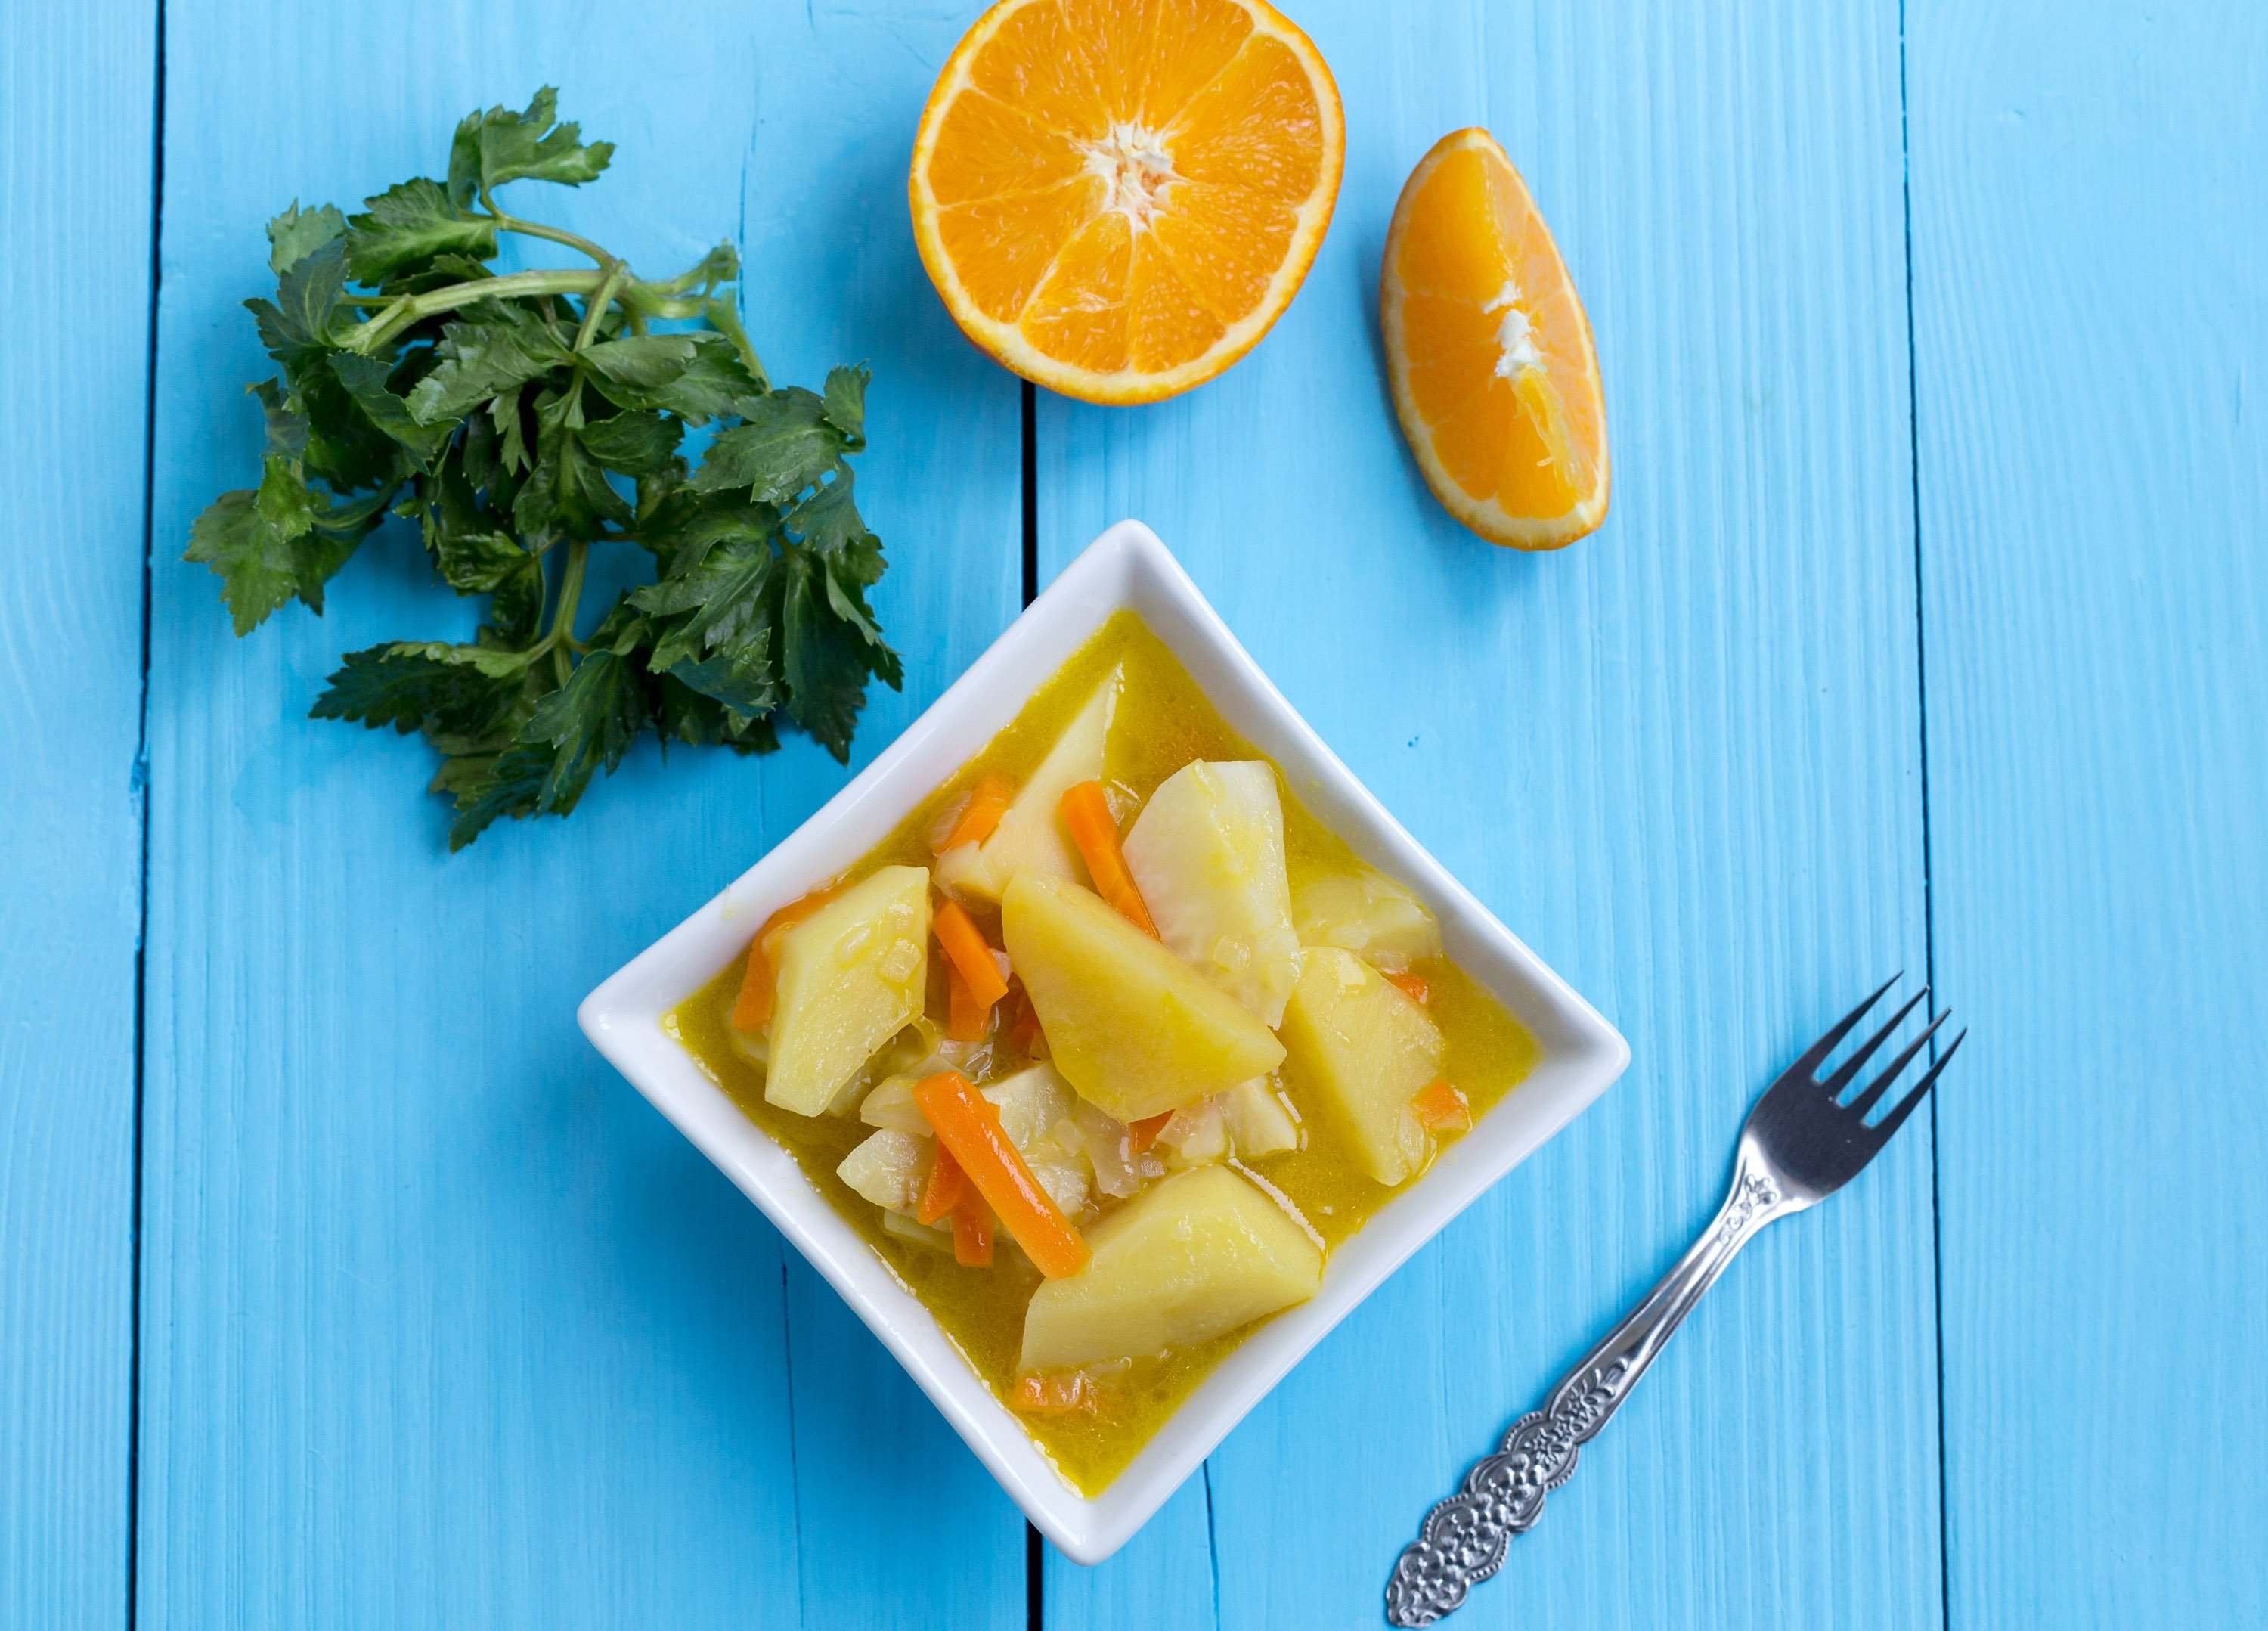 Potato, carrot and celery pairs well with citrus fruits, such as lemon, oranges or tangerines. (Shutterstock Photo)